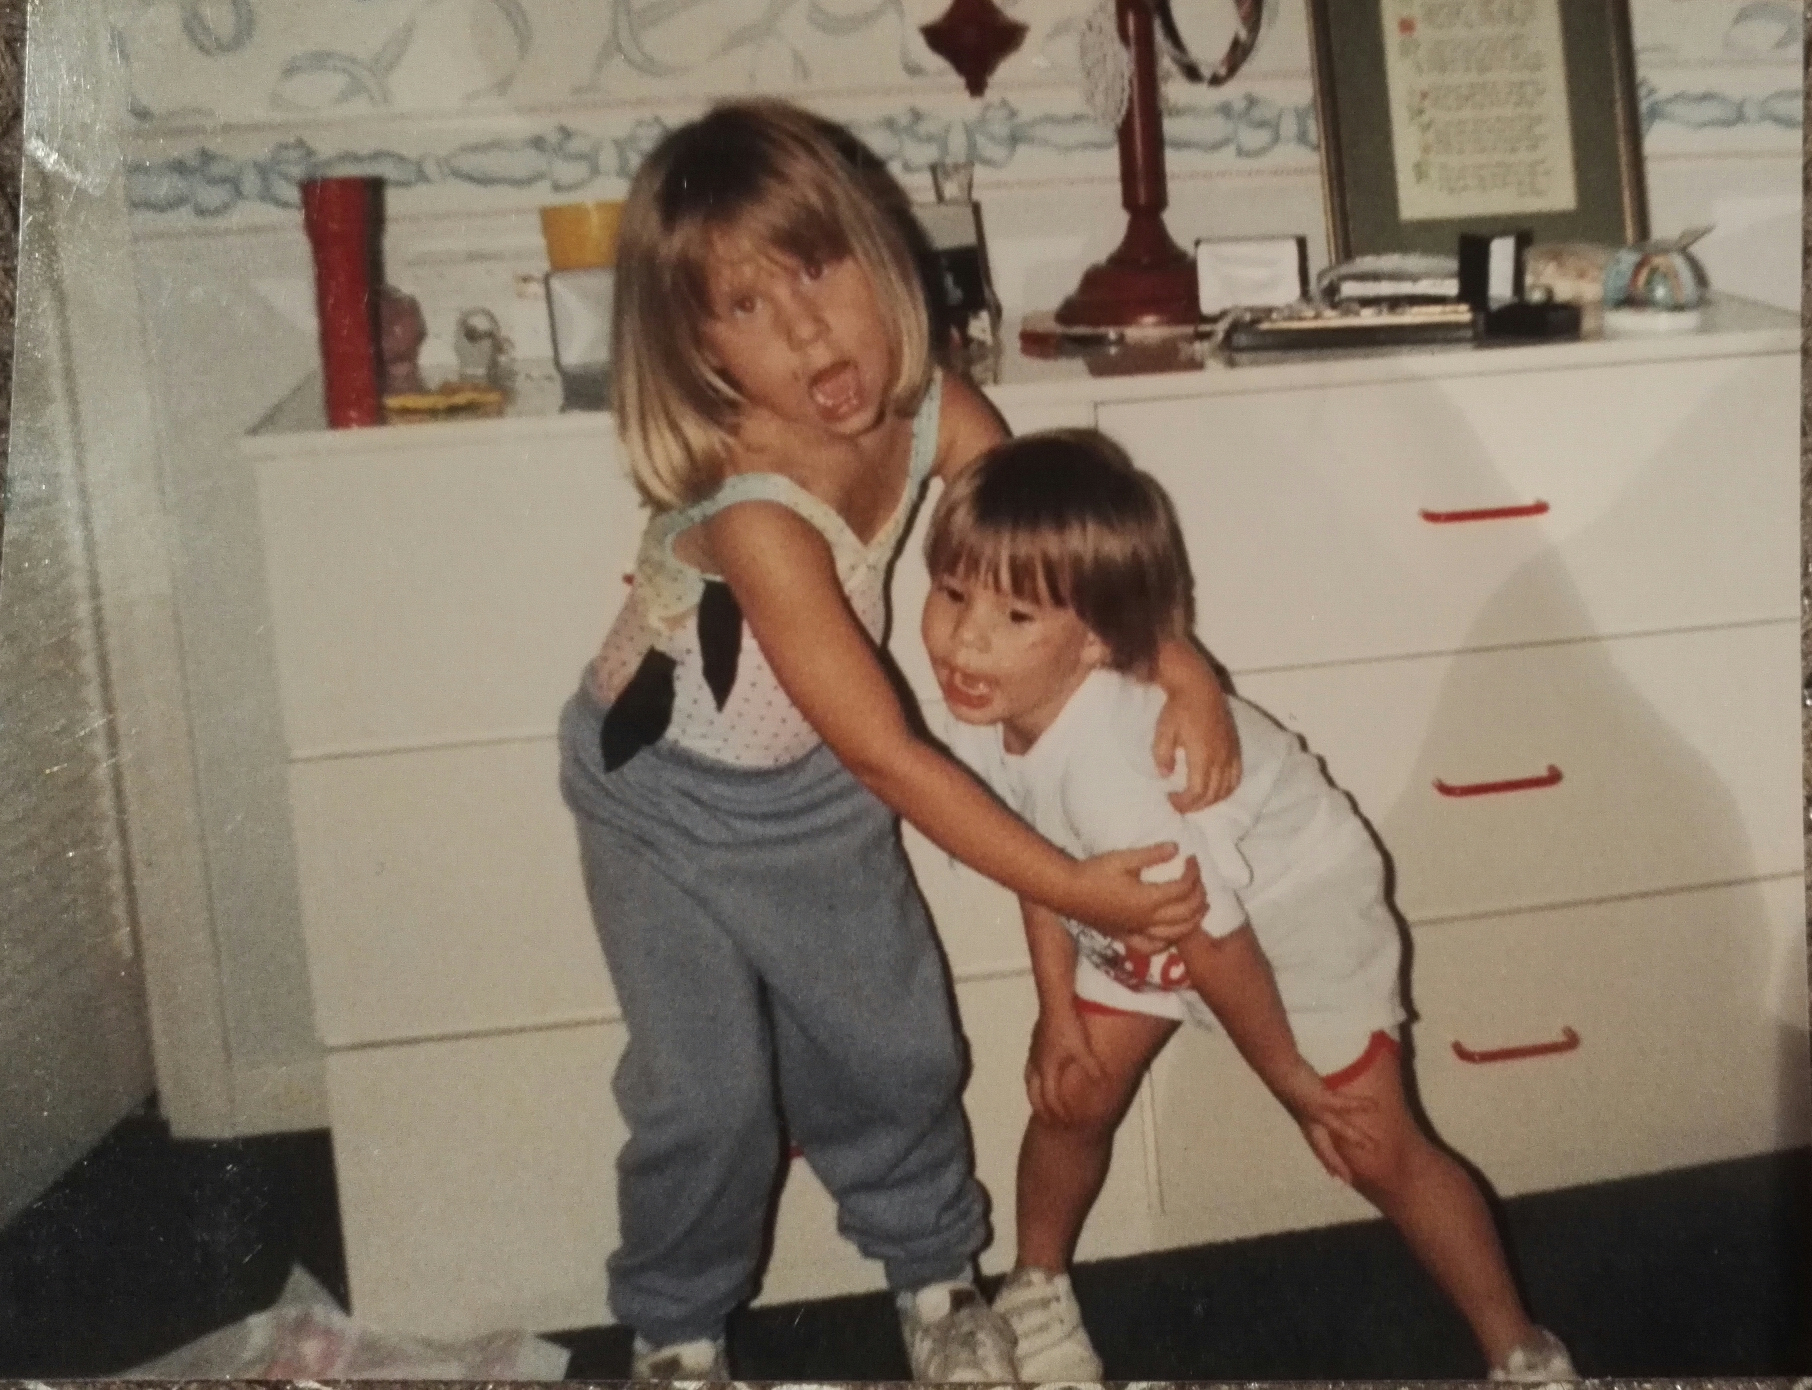 Me on the left, Ally on the right. I'm not sure how old we are in this picture. But I swear we're 17 months apart even though Ally is half my size.